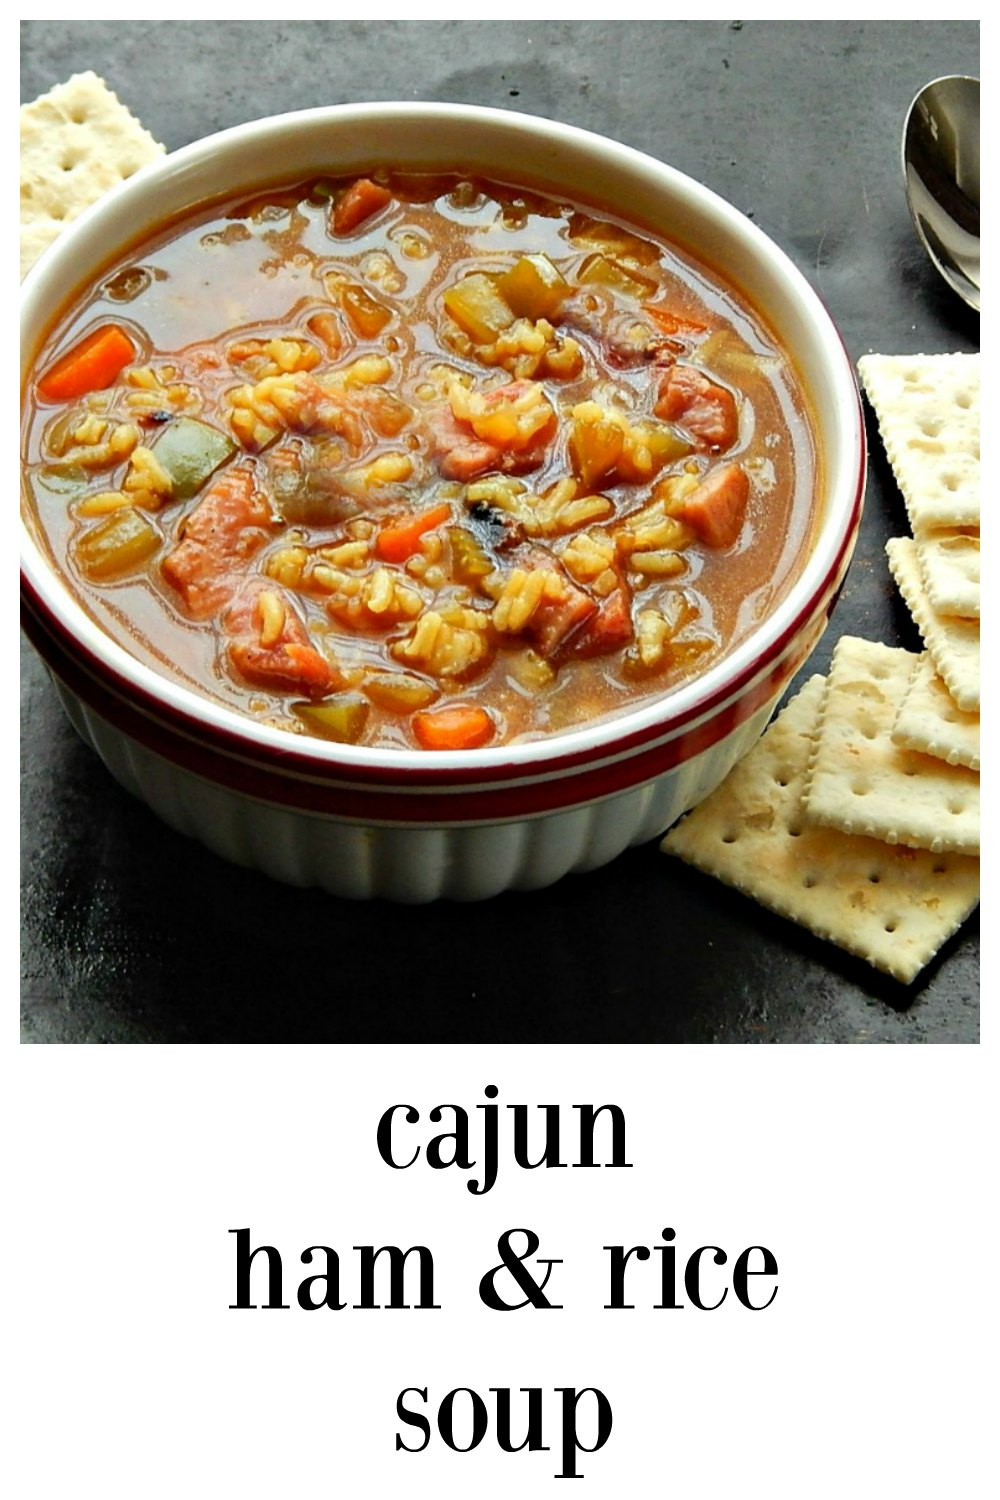 Cajun Ham & Rice Soup: Quick and easy, full of flavor, ham and hearty veggies. This is a great soup to use up that leftover ham. #Cajun Ham Rice Soup #CajunSoup #HamSoup #HamRiceSoup